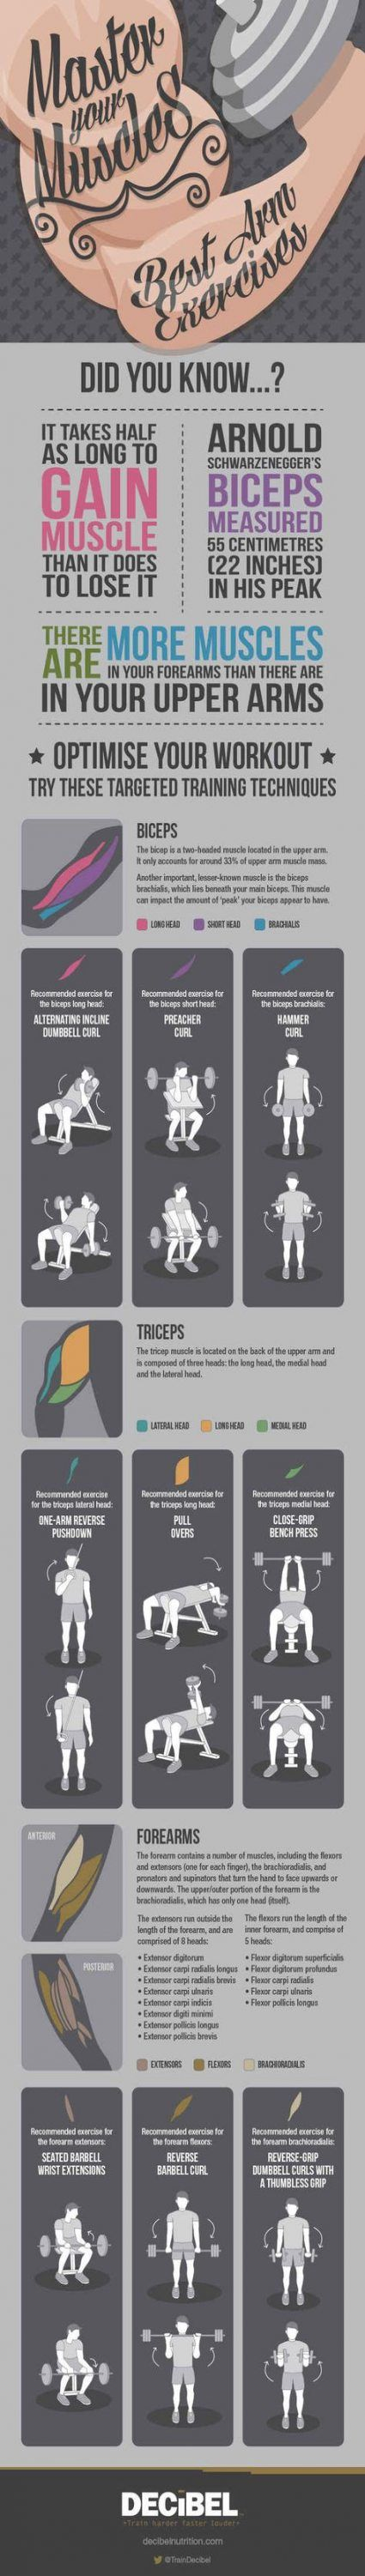 Super fitness workouts arms muscle Ideas #fitness